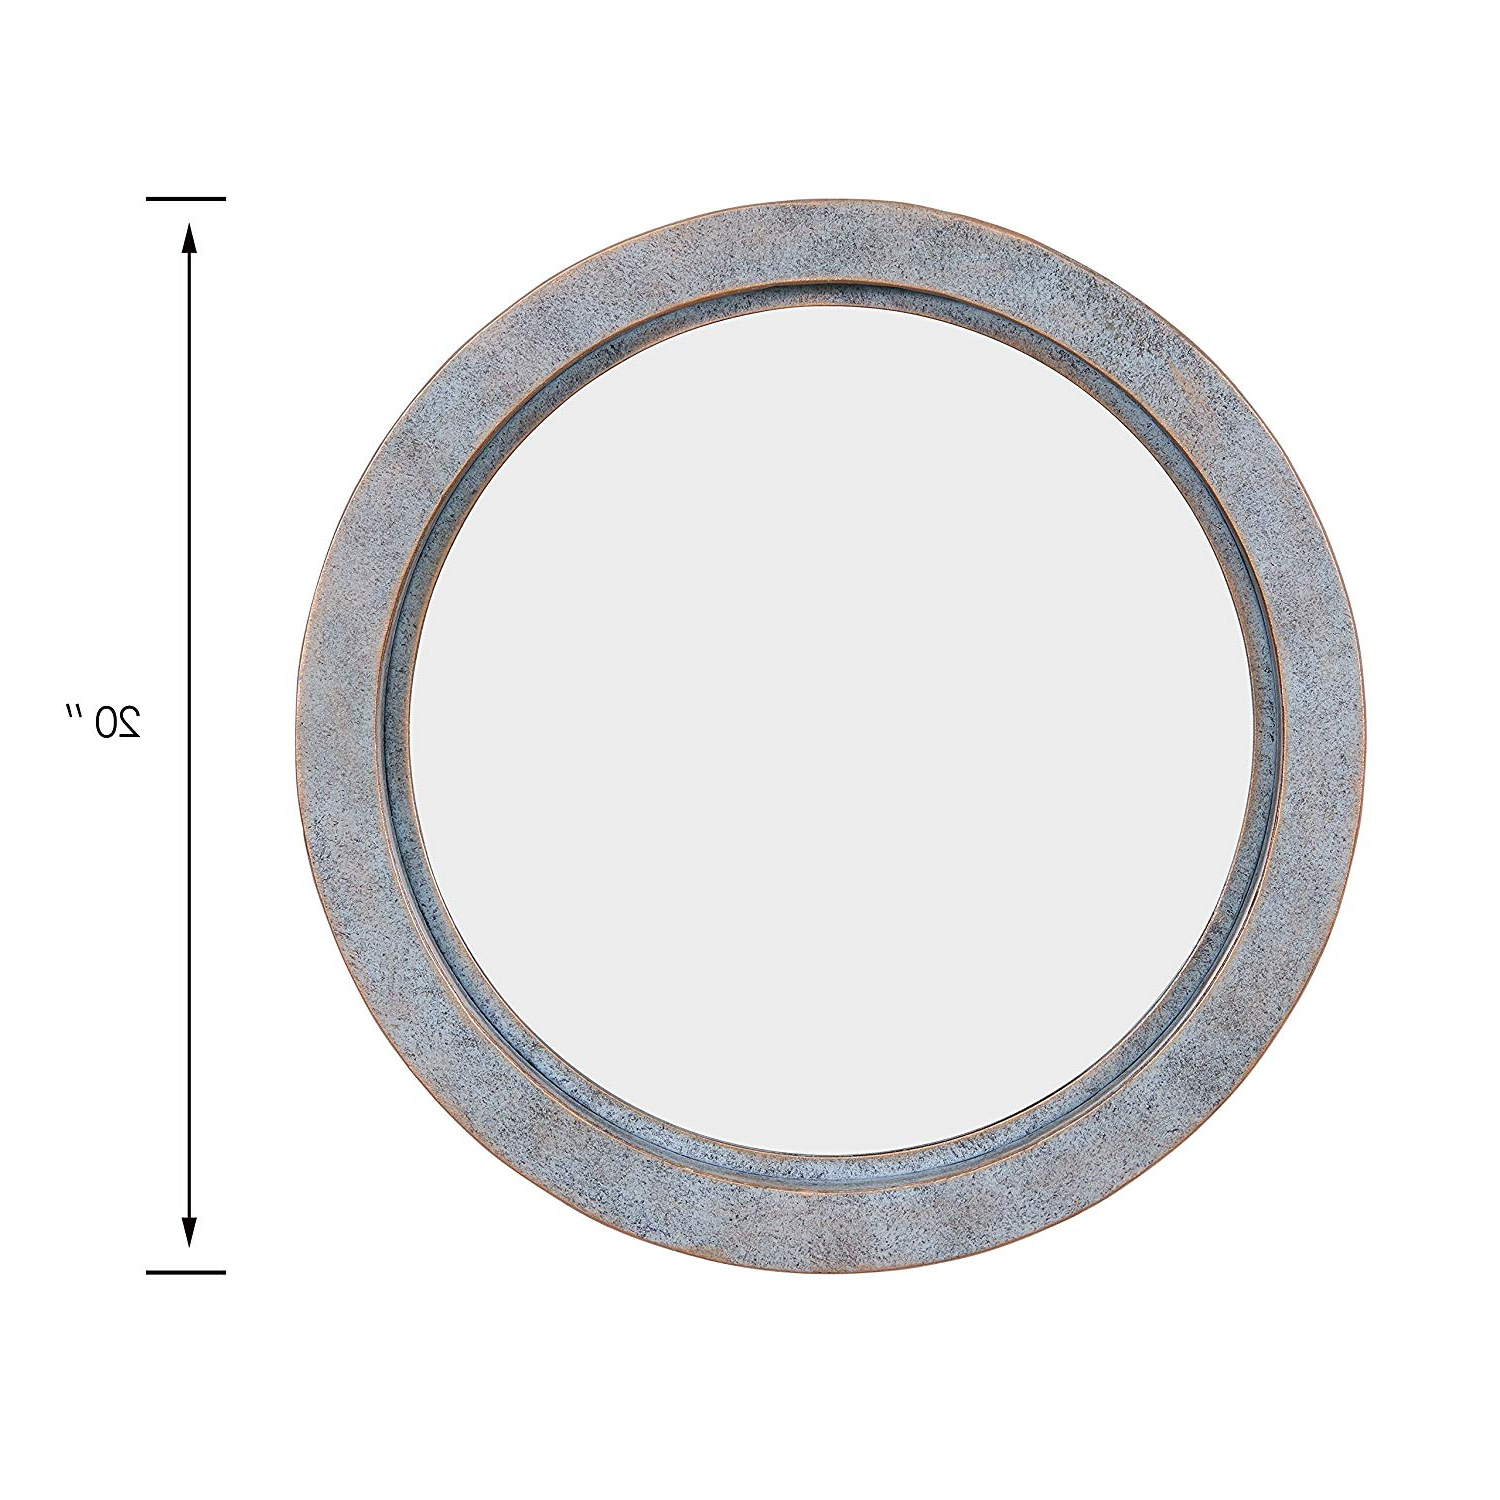 Industrial Modern & Contemporary Wall Mirrors In Widely Used Danya B. Fhb1715 Modern Industrial Floating Round 20 Inch Wall Mirror With  Antiqued Copper Metal Frame – Contemporary Framed Hanging Mirror (Gallery 8 of 20)